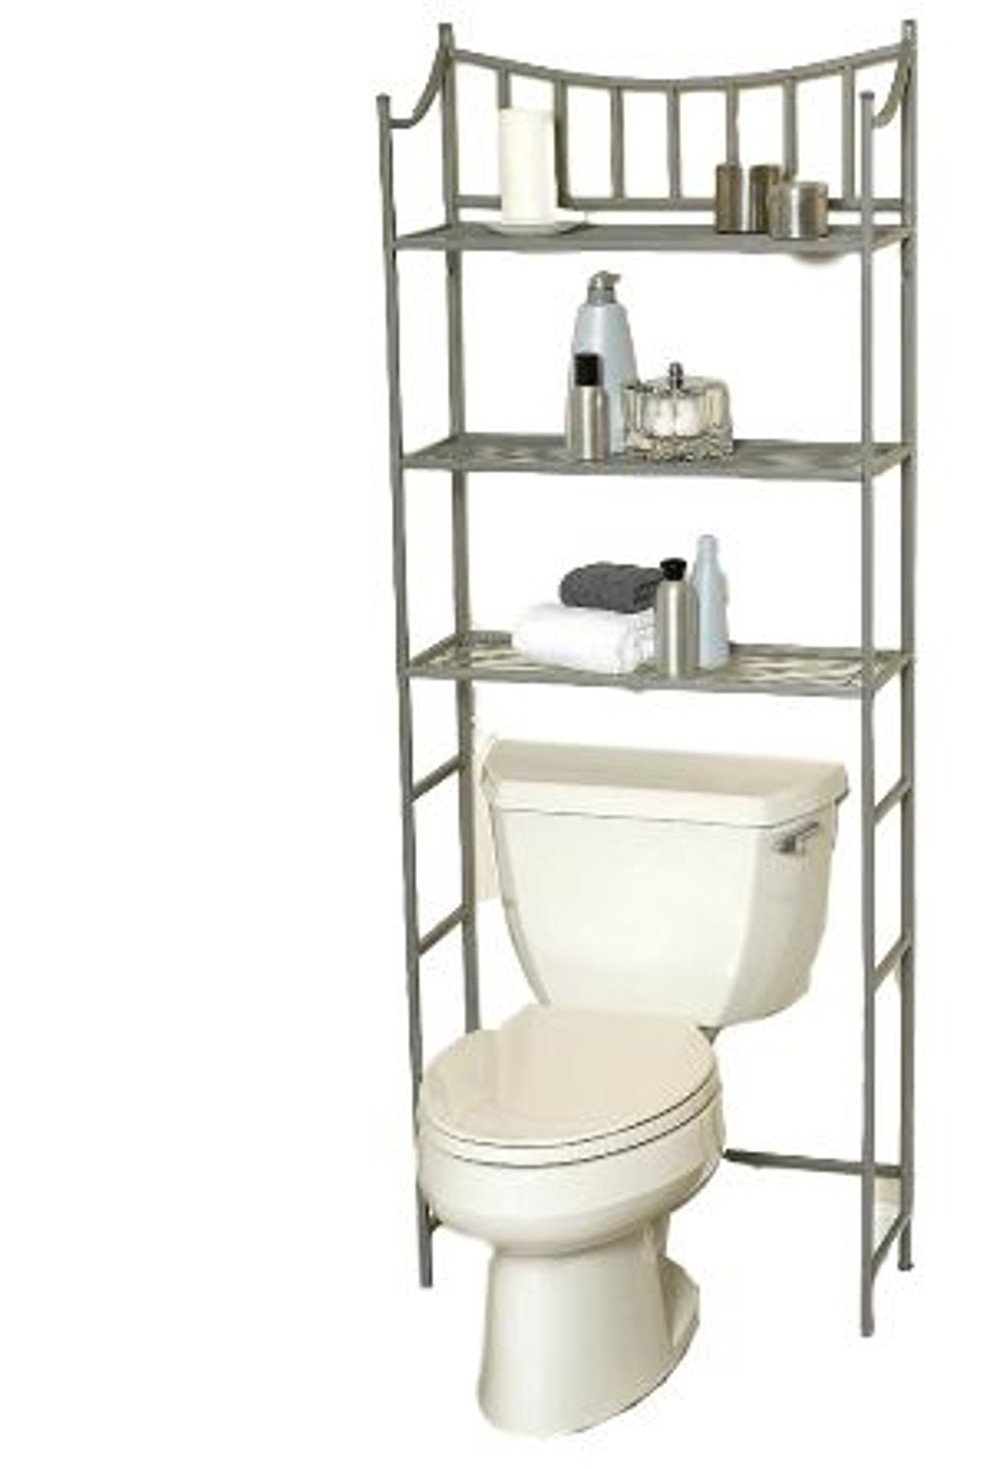 Over Toilet Storage Rack,Bathroom,Space Saver Cupboard Open Shelves Home Indoor Furniture Store Organizer & Ebook by Easy 2 Find.